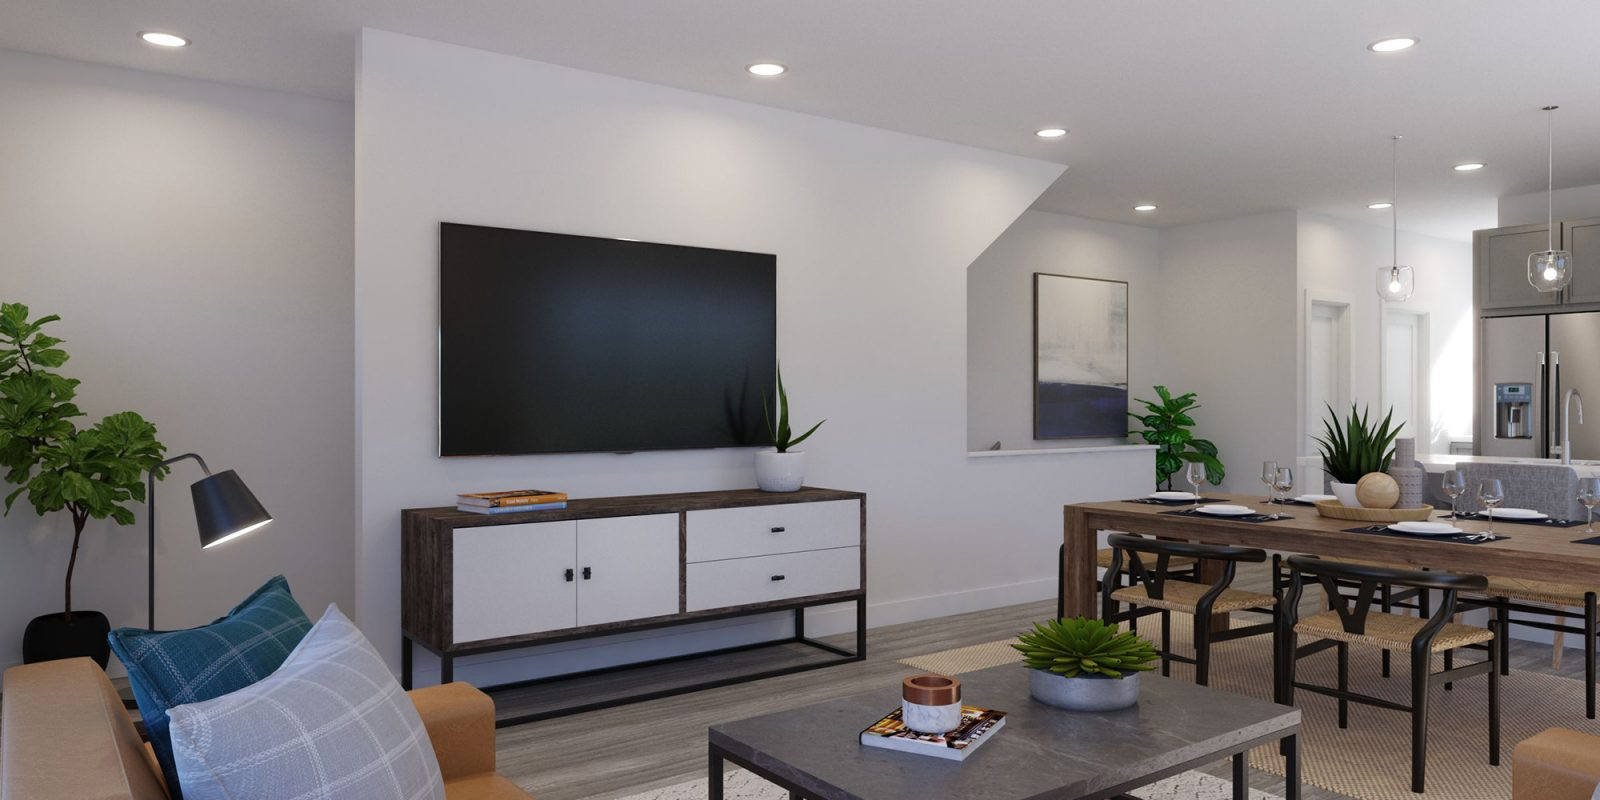 Baseline DoMore Rows: Haven - Living Room